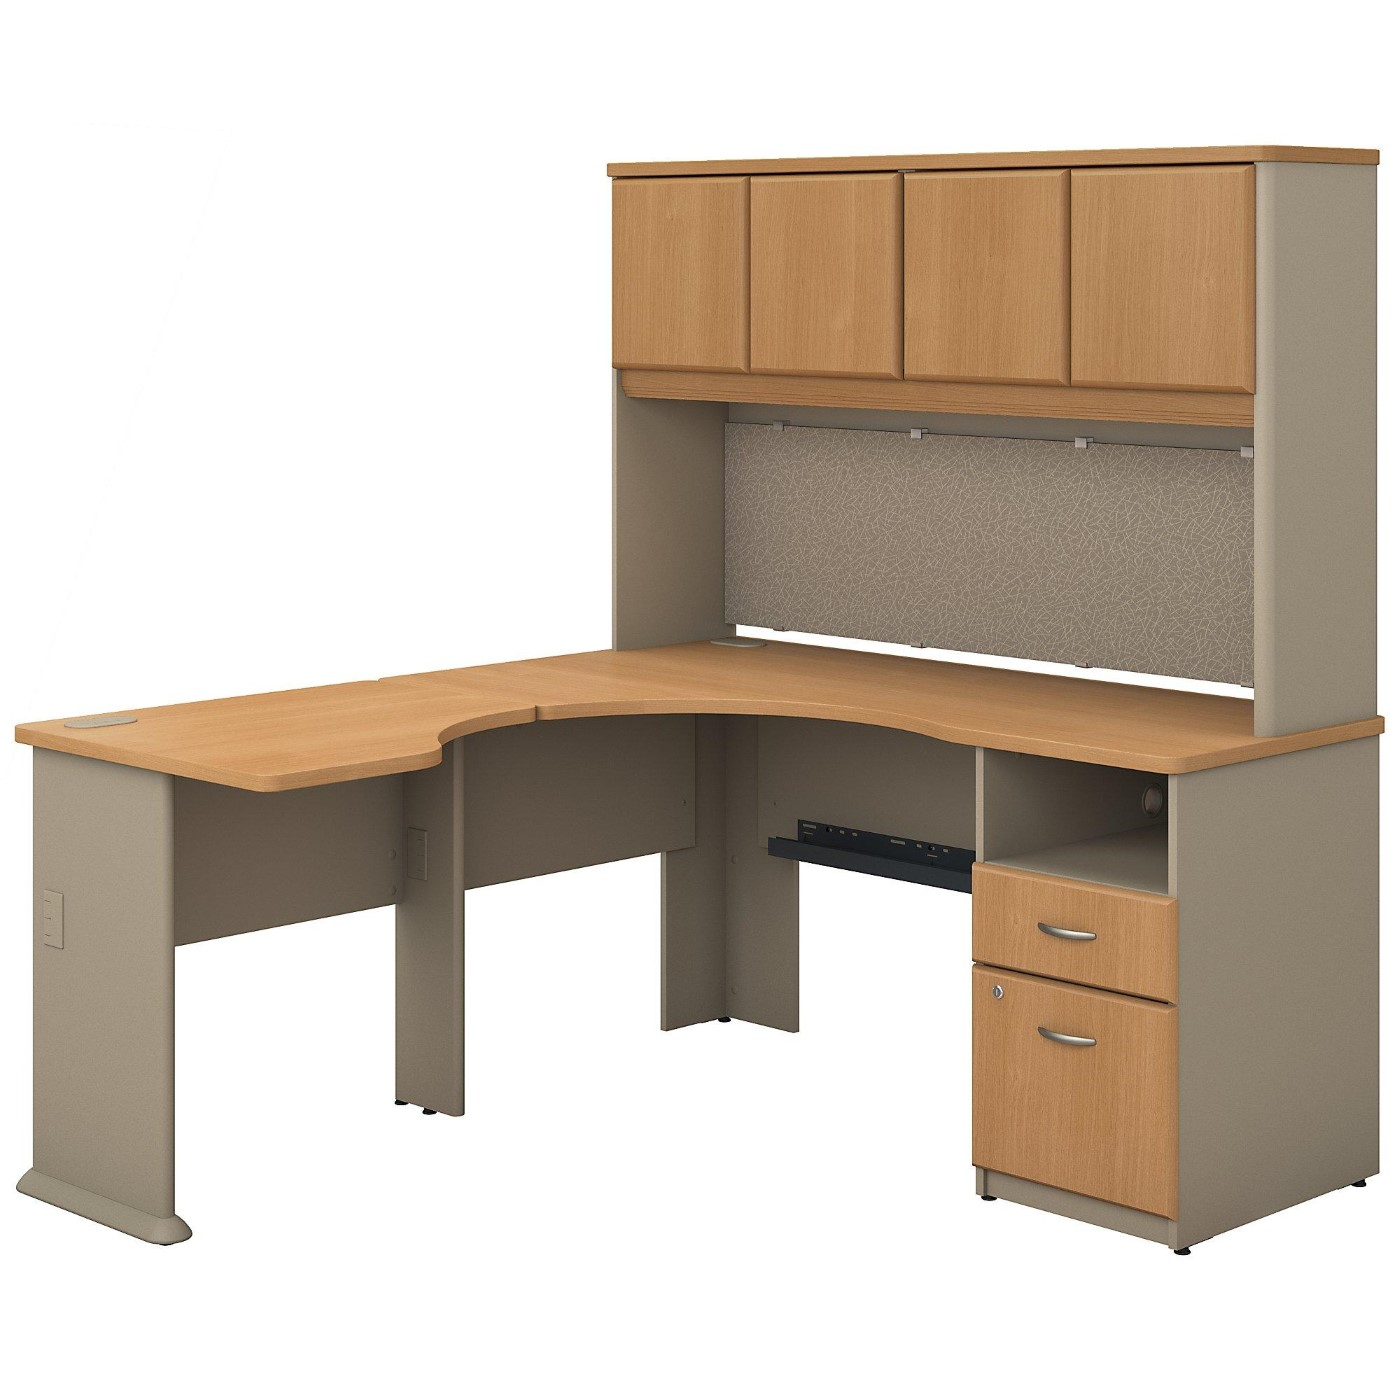 <font color=#c60><b>BUSH BUSINESS FURNITURE SERIES A 60W X 65D L SHAPED DESK WITH HUTCH AND 2 DRAWER PEDESTAL #EH-SRA062LO. FREE SHIPPING</font></b>